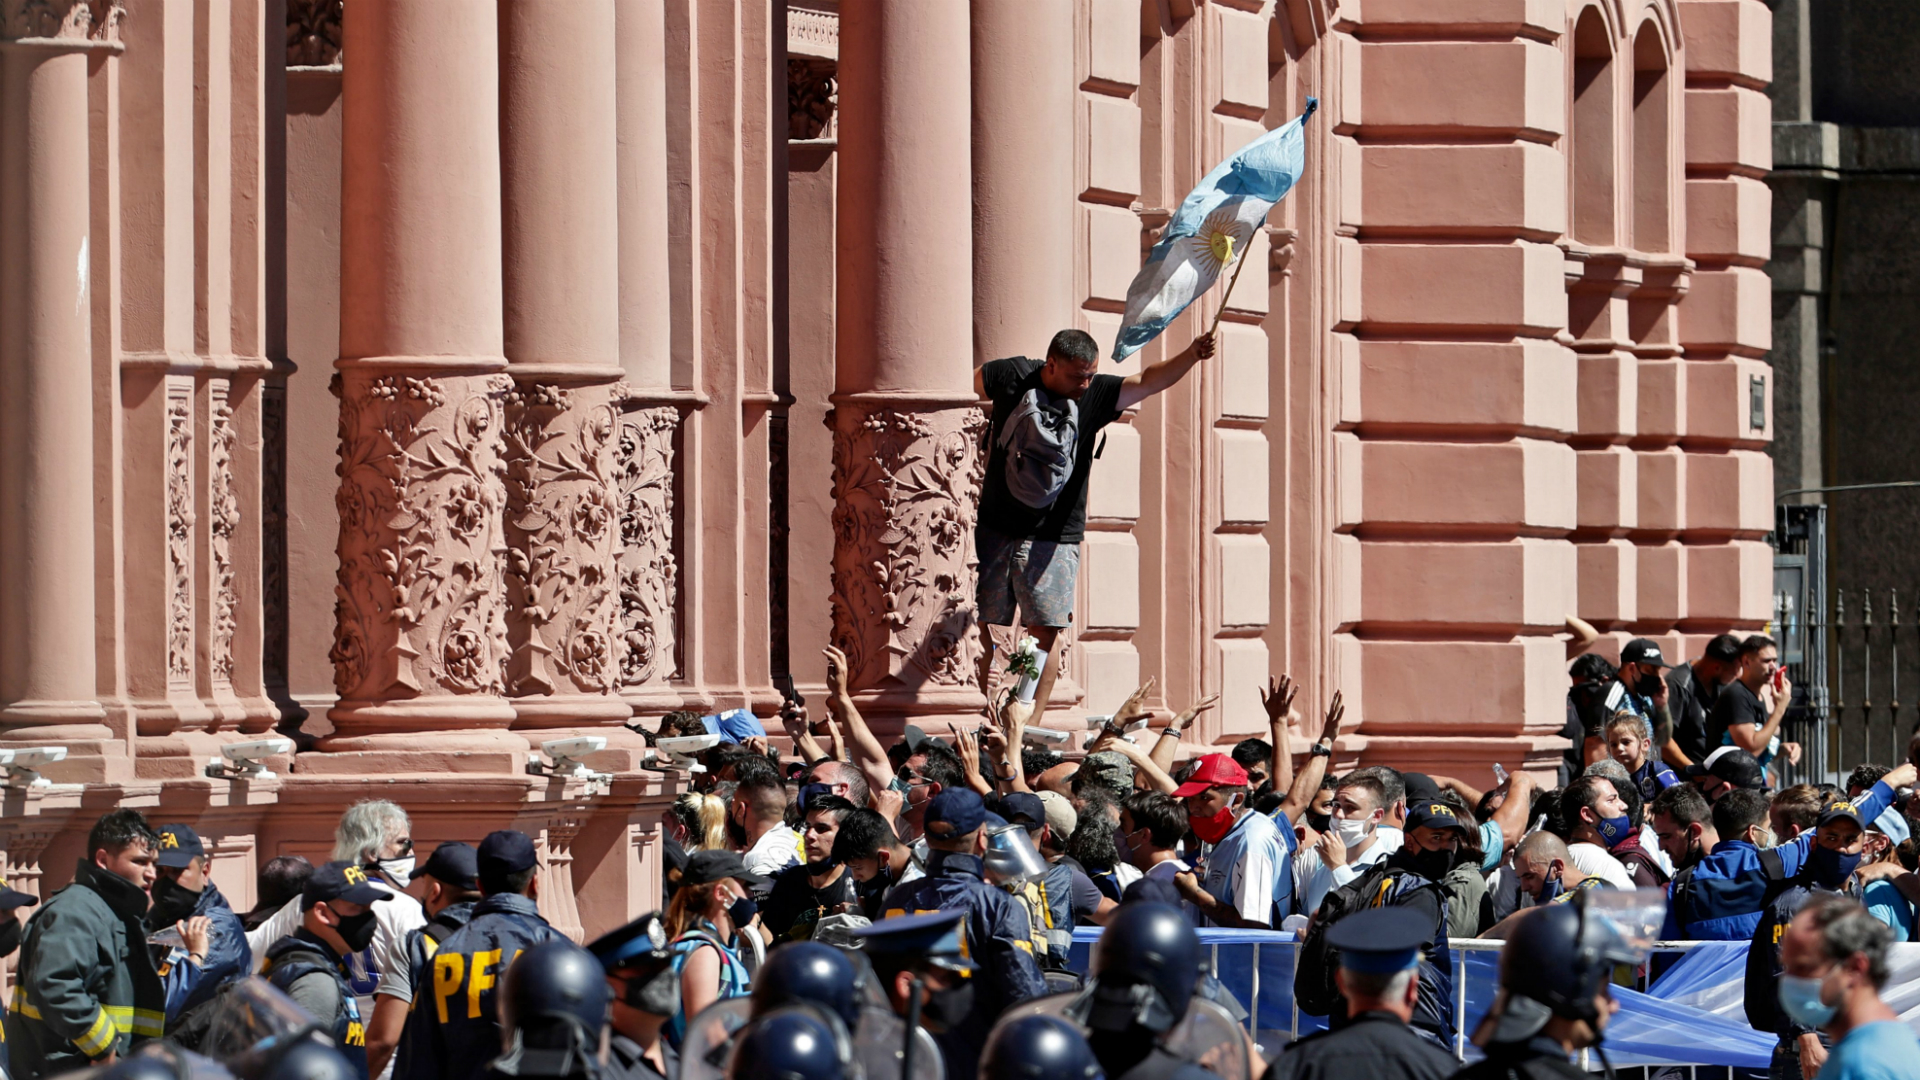 Diego Maradona dies: Mourners and police clash at Argentina great's funeral